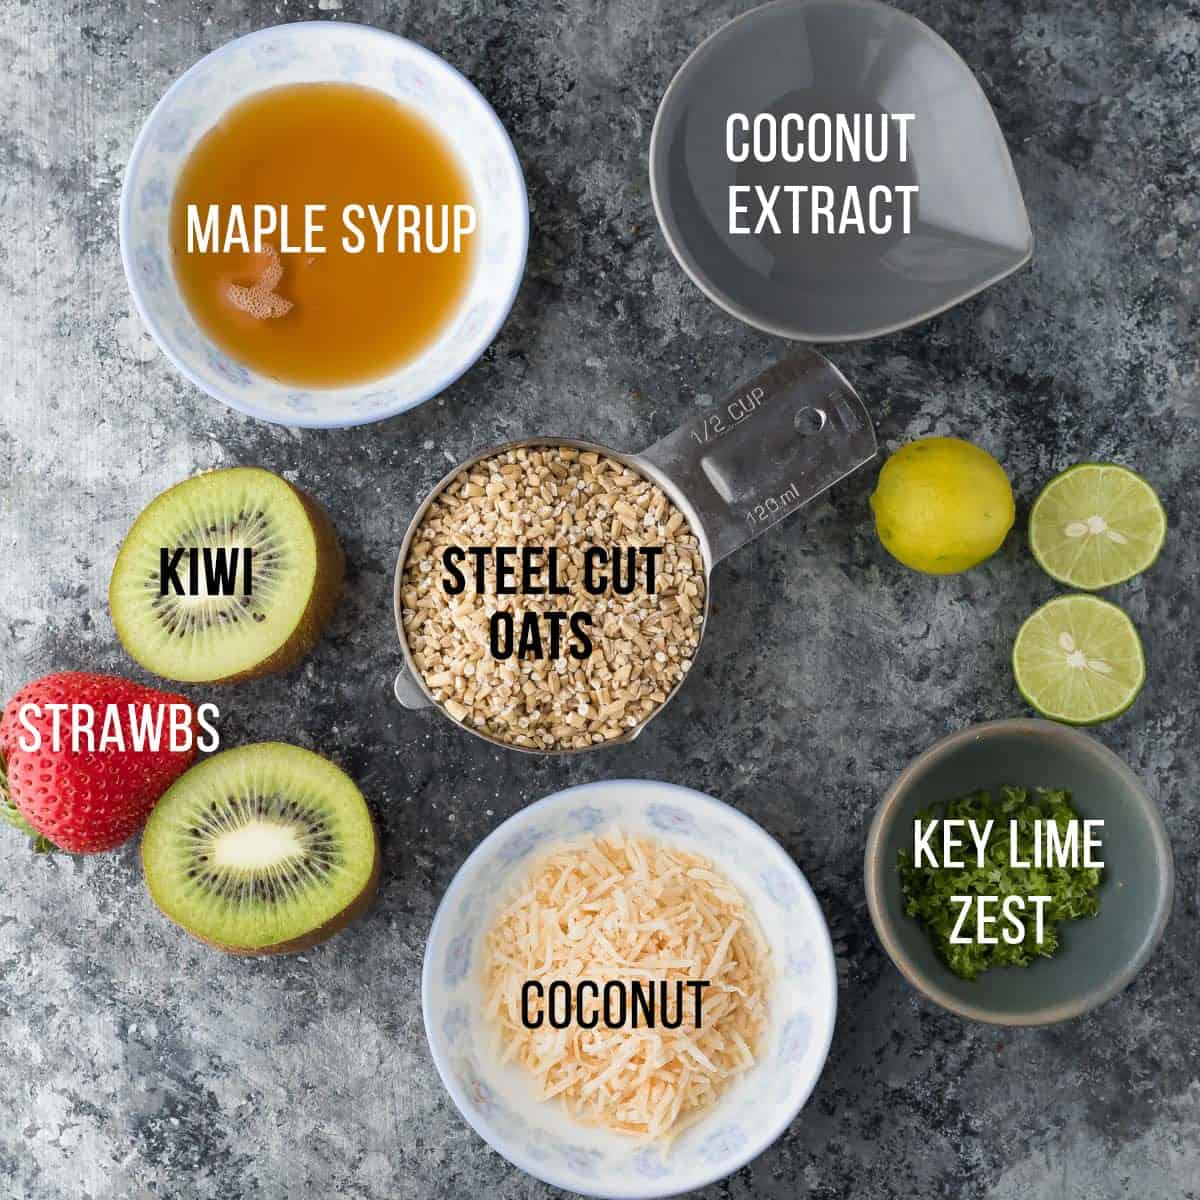 7 healthy steel cut oatmeal recipes that are easy to make ahead and keep in the fridge or freezer for easy breakfasts. Plus instructions on how to cook steel cut oats in the Instant Pot, slow cooker or on the stovetop. #breakfast #oatmeal #instantpot #mealprep #freezermeal #steelcutoats